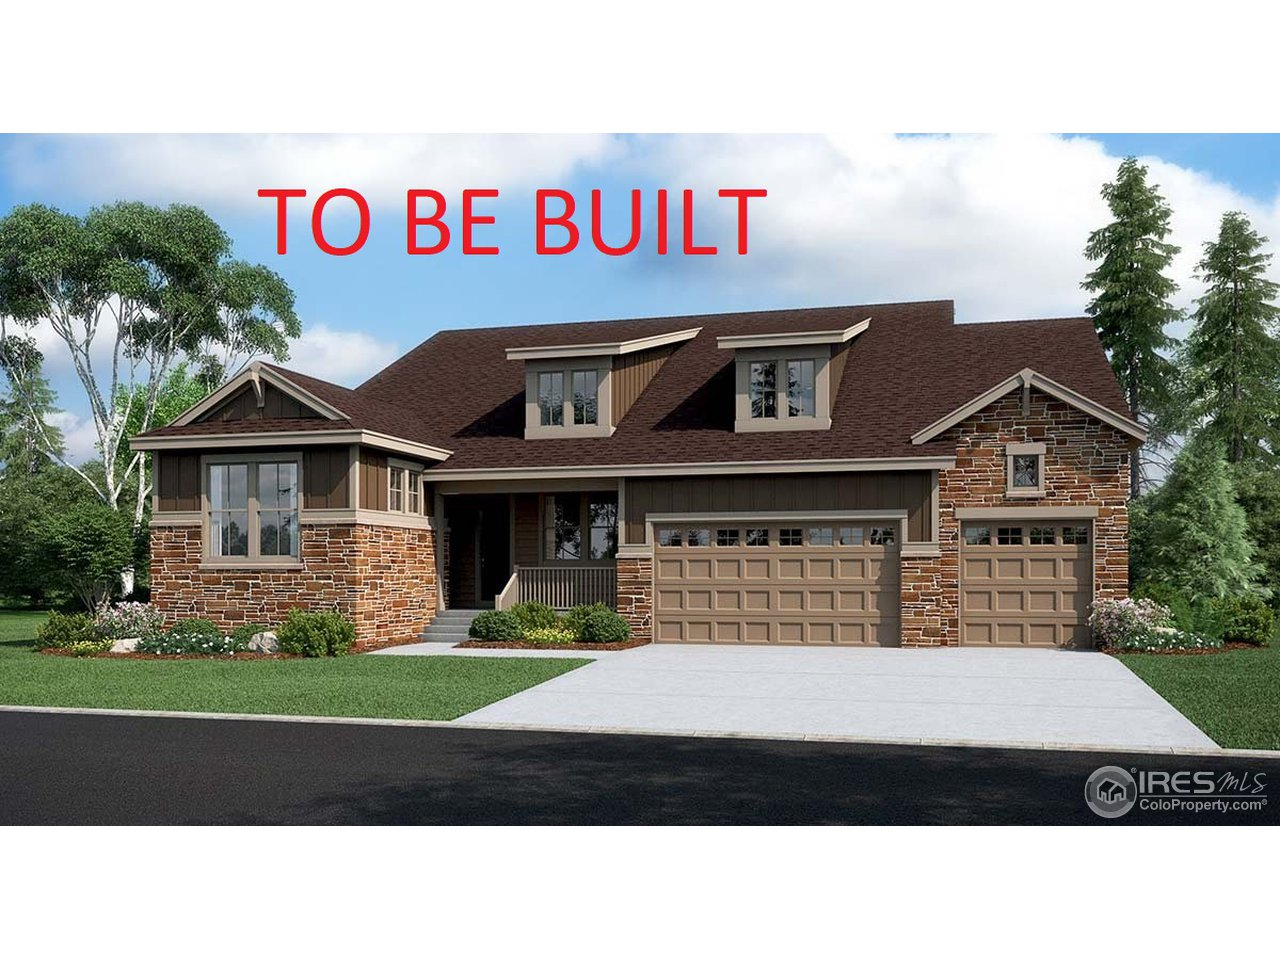 To be built 12/31/18. Not actual home.